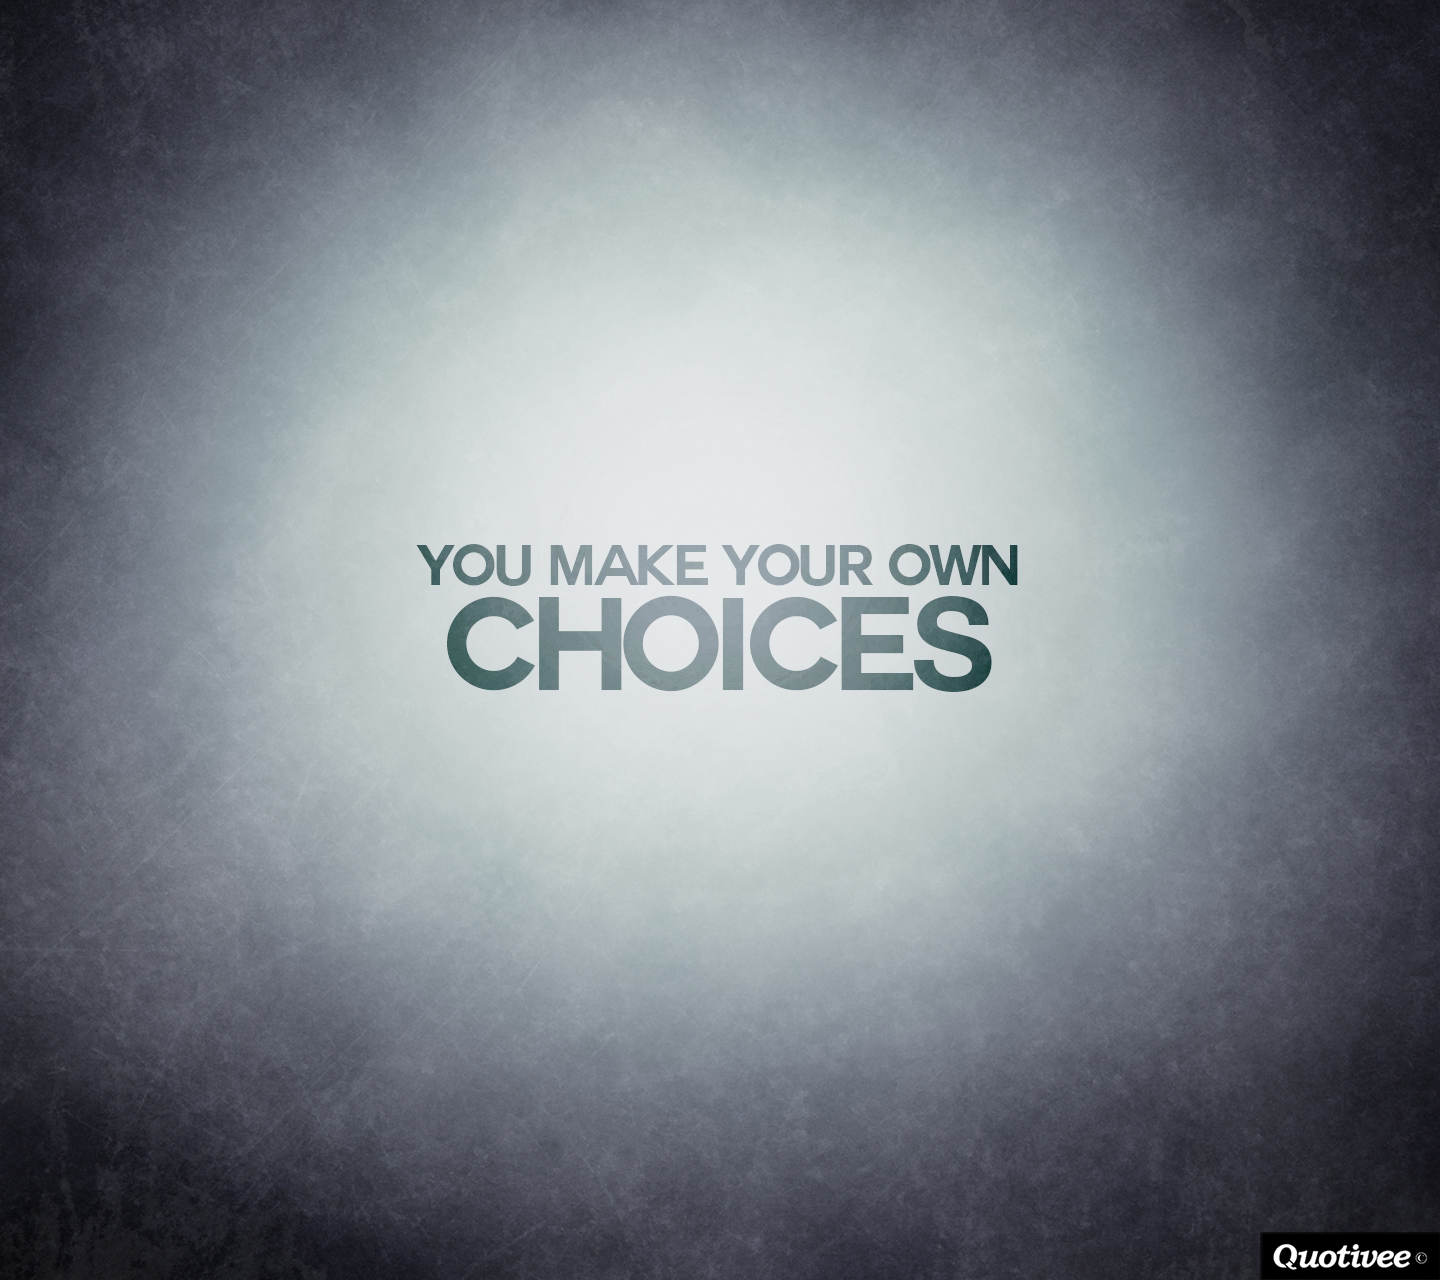 You Make Your Own Choices  Inspirational Quotes  Quotivee